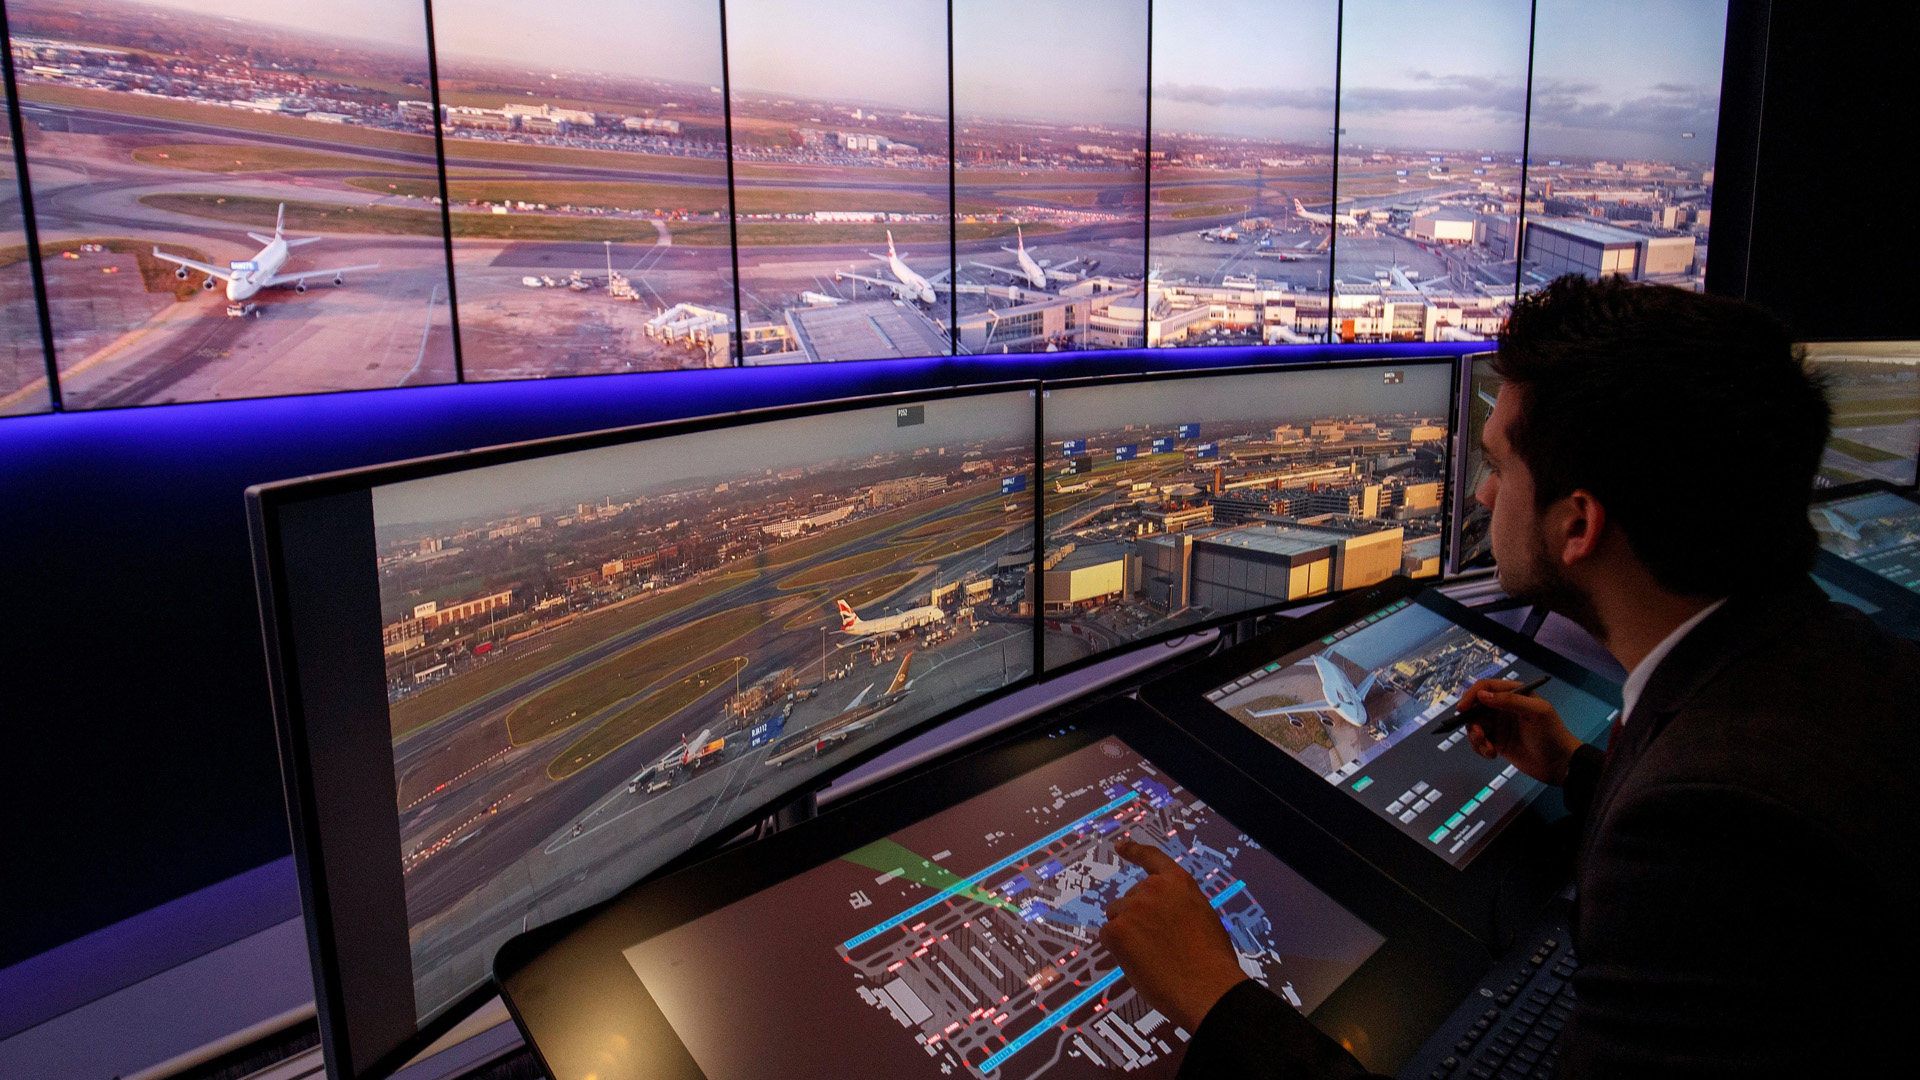 Air traffic control engineers watch screens displaying real-time views of runways and docking gates filmed through cameras combined with artificial intelligence at London Heathrow Airport in west London on Jan. 23, 2019.(Credit: Tolga Akmen/AFP/Getty Images)